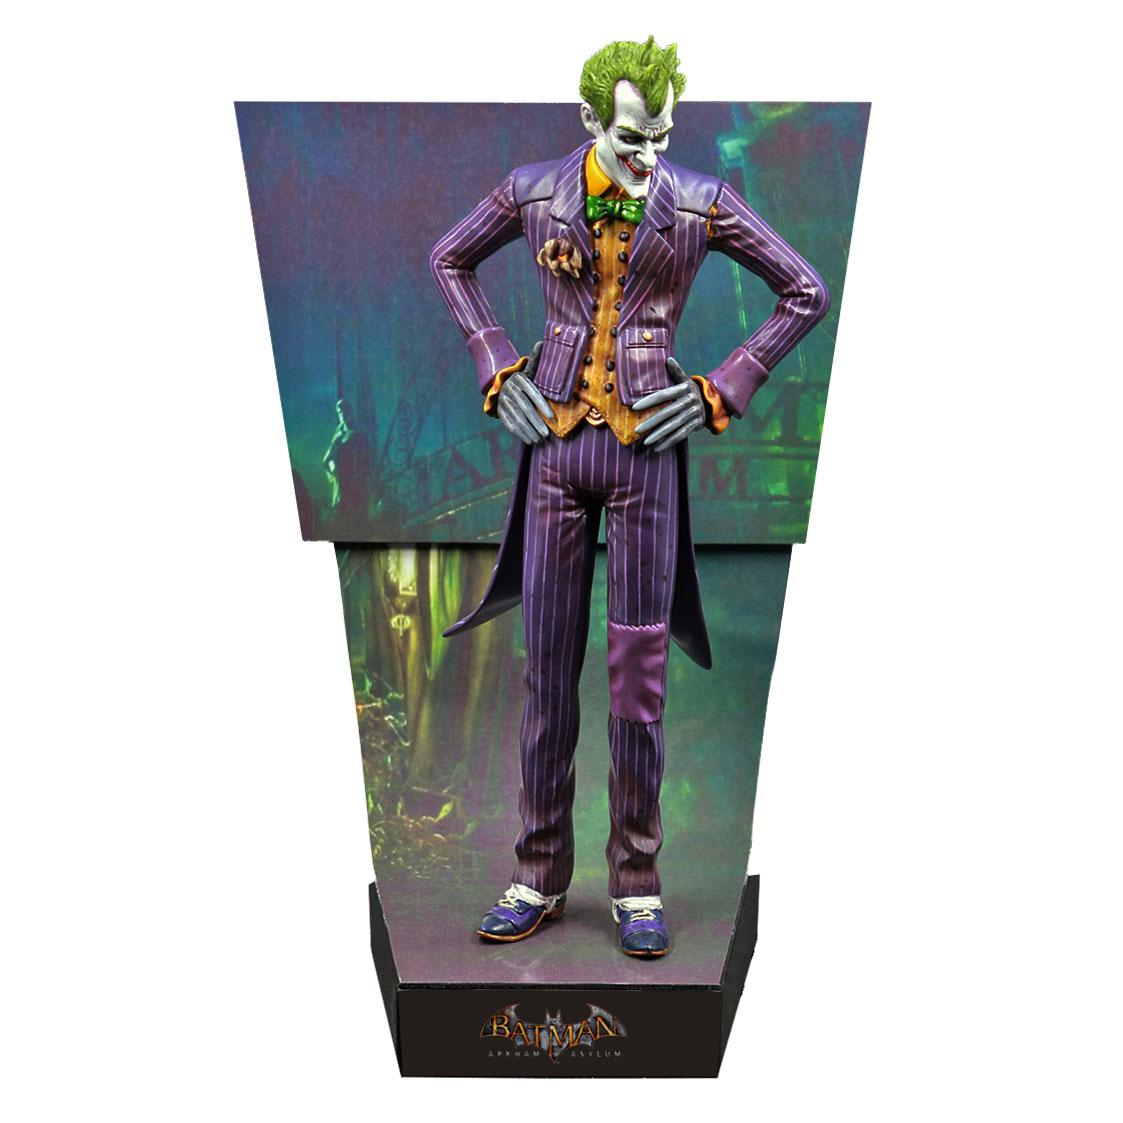 19/07 Batman Arkham Asylum Premium Motion Statue The Joker 25 cm